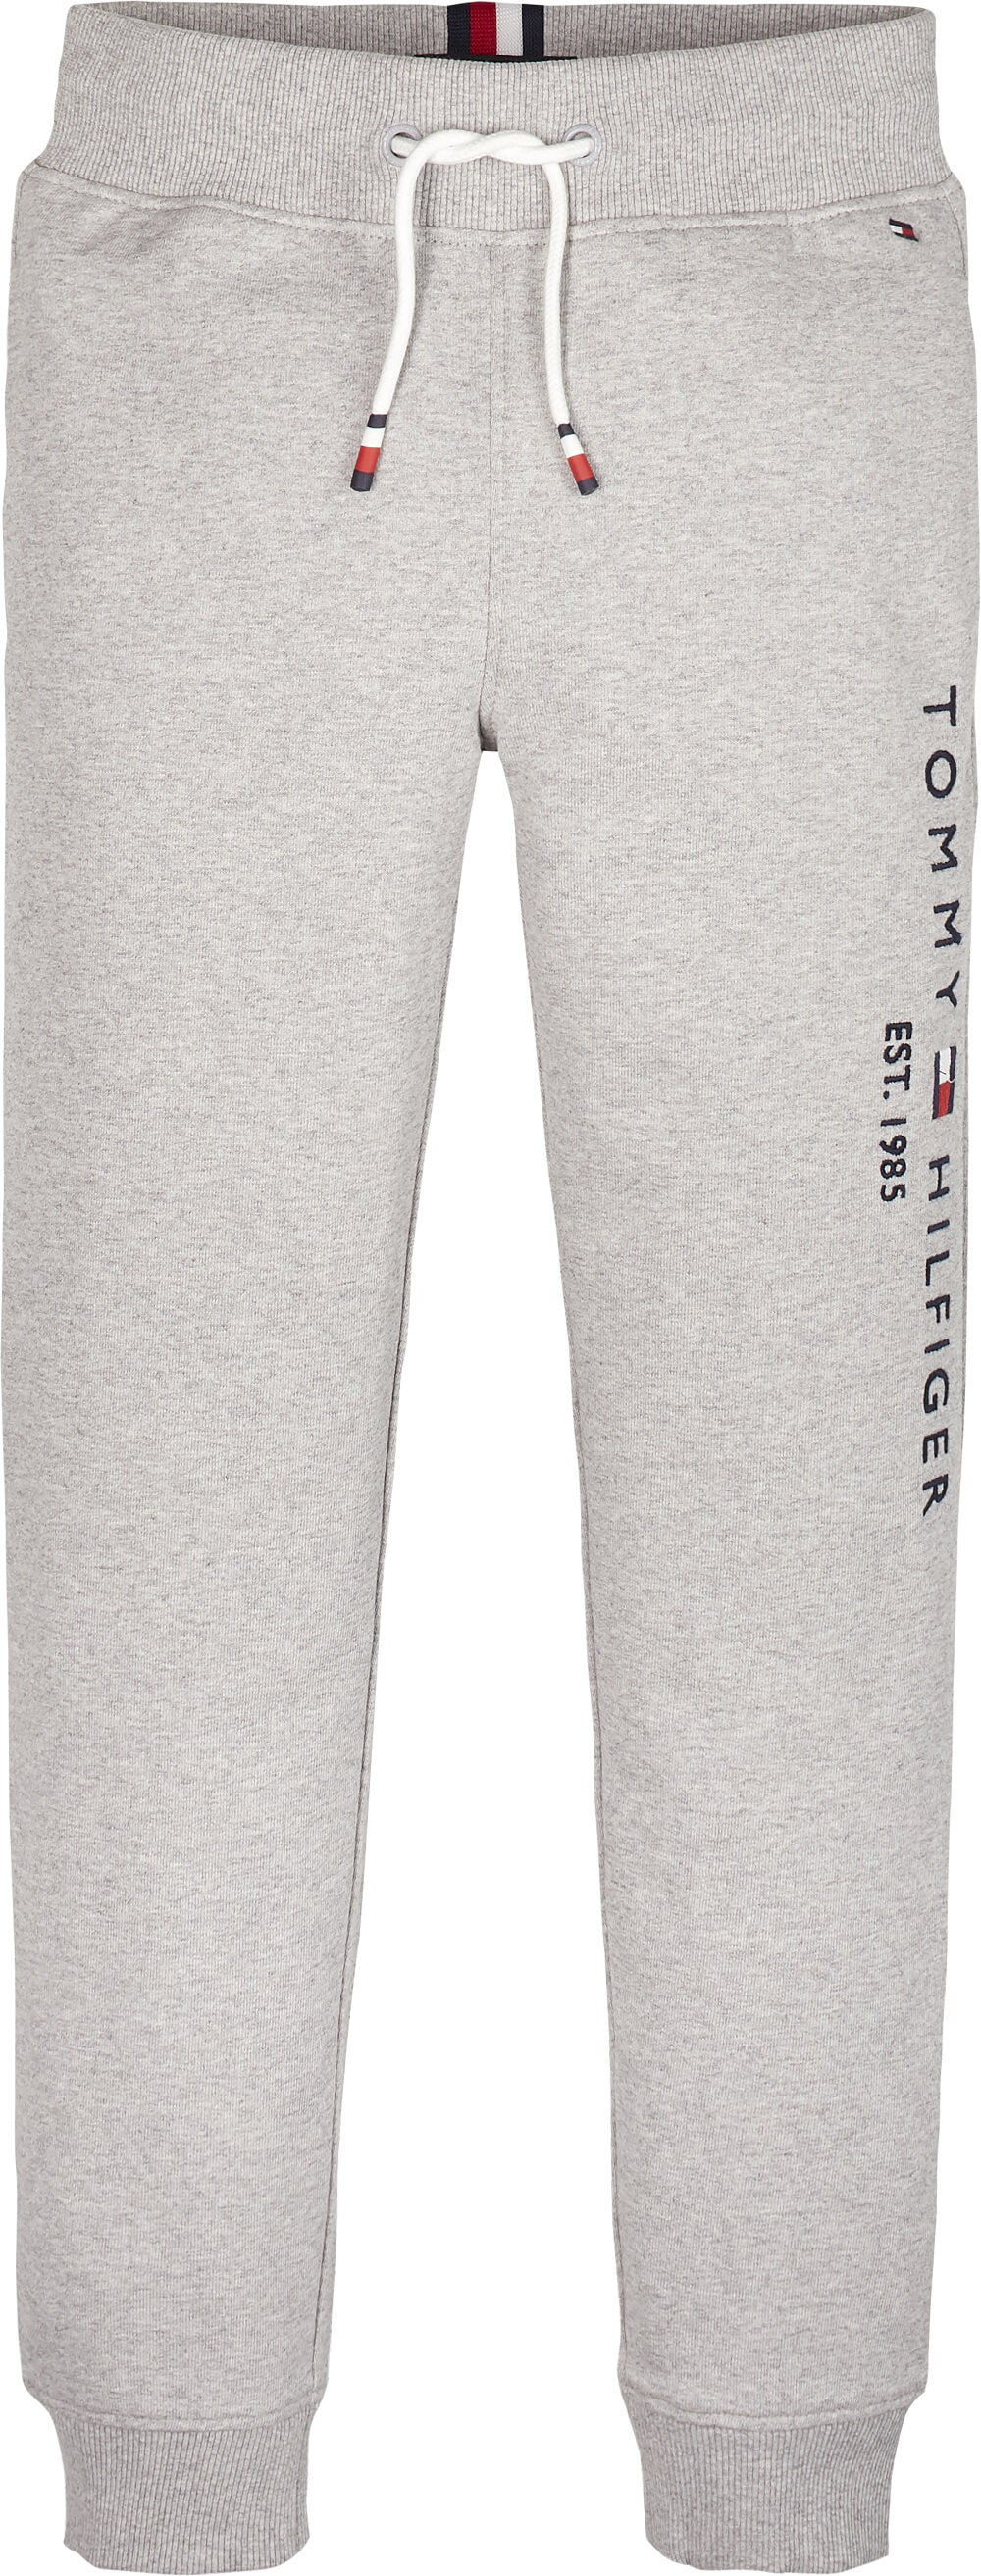 Tommy Hilfiger Childrenswear Collegehousut, Essential Sweatpants Vaaleanharmaa